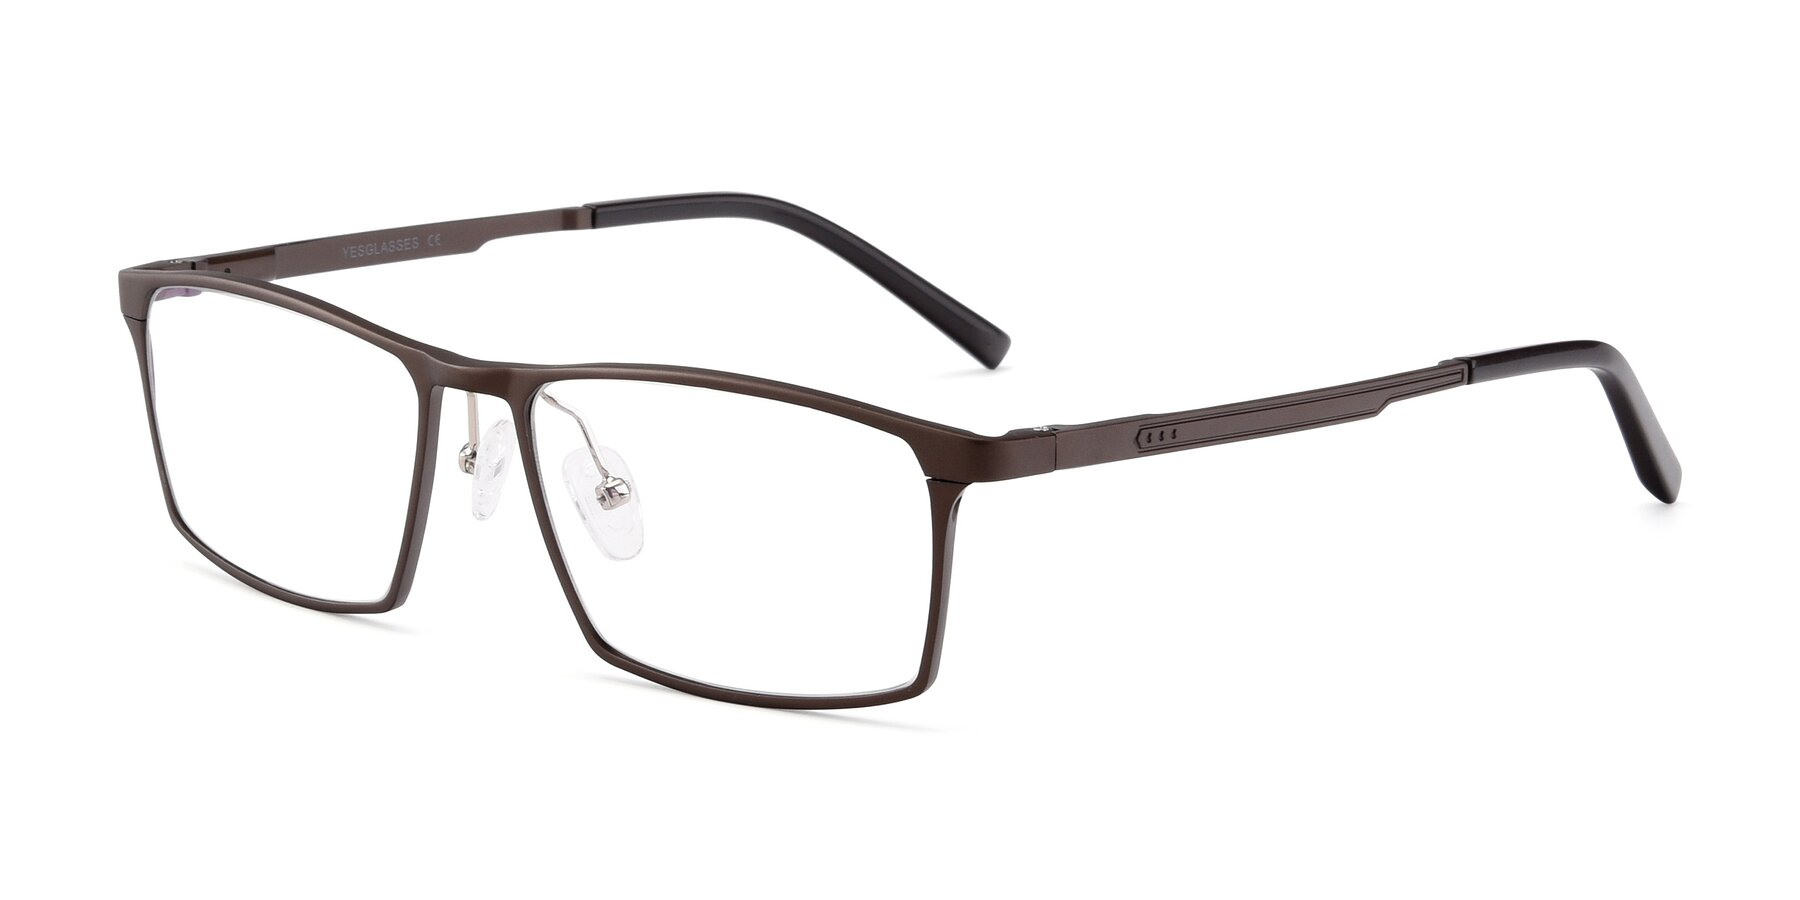 Angle of CX6341 in Coffee with Clear Blue Light Blocking Lenses